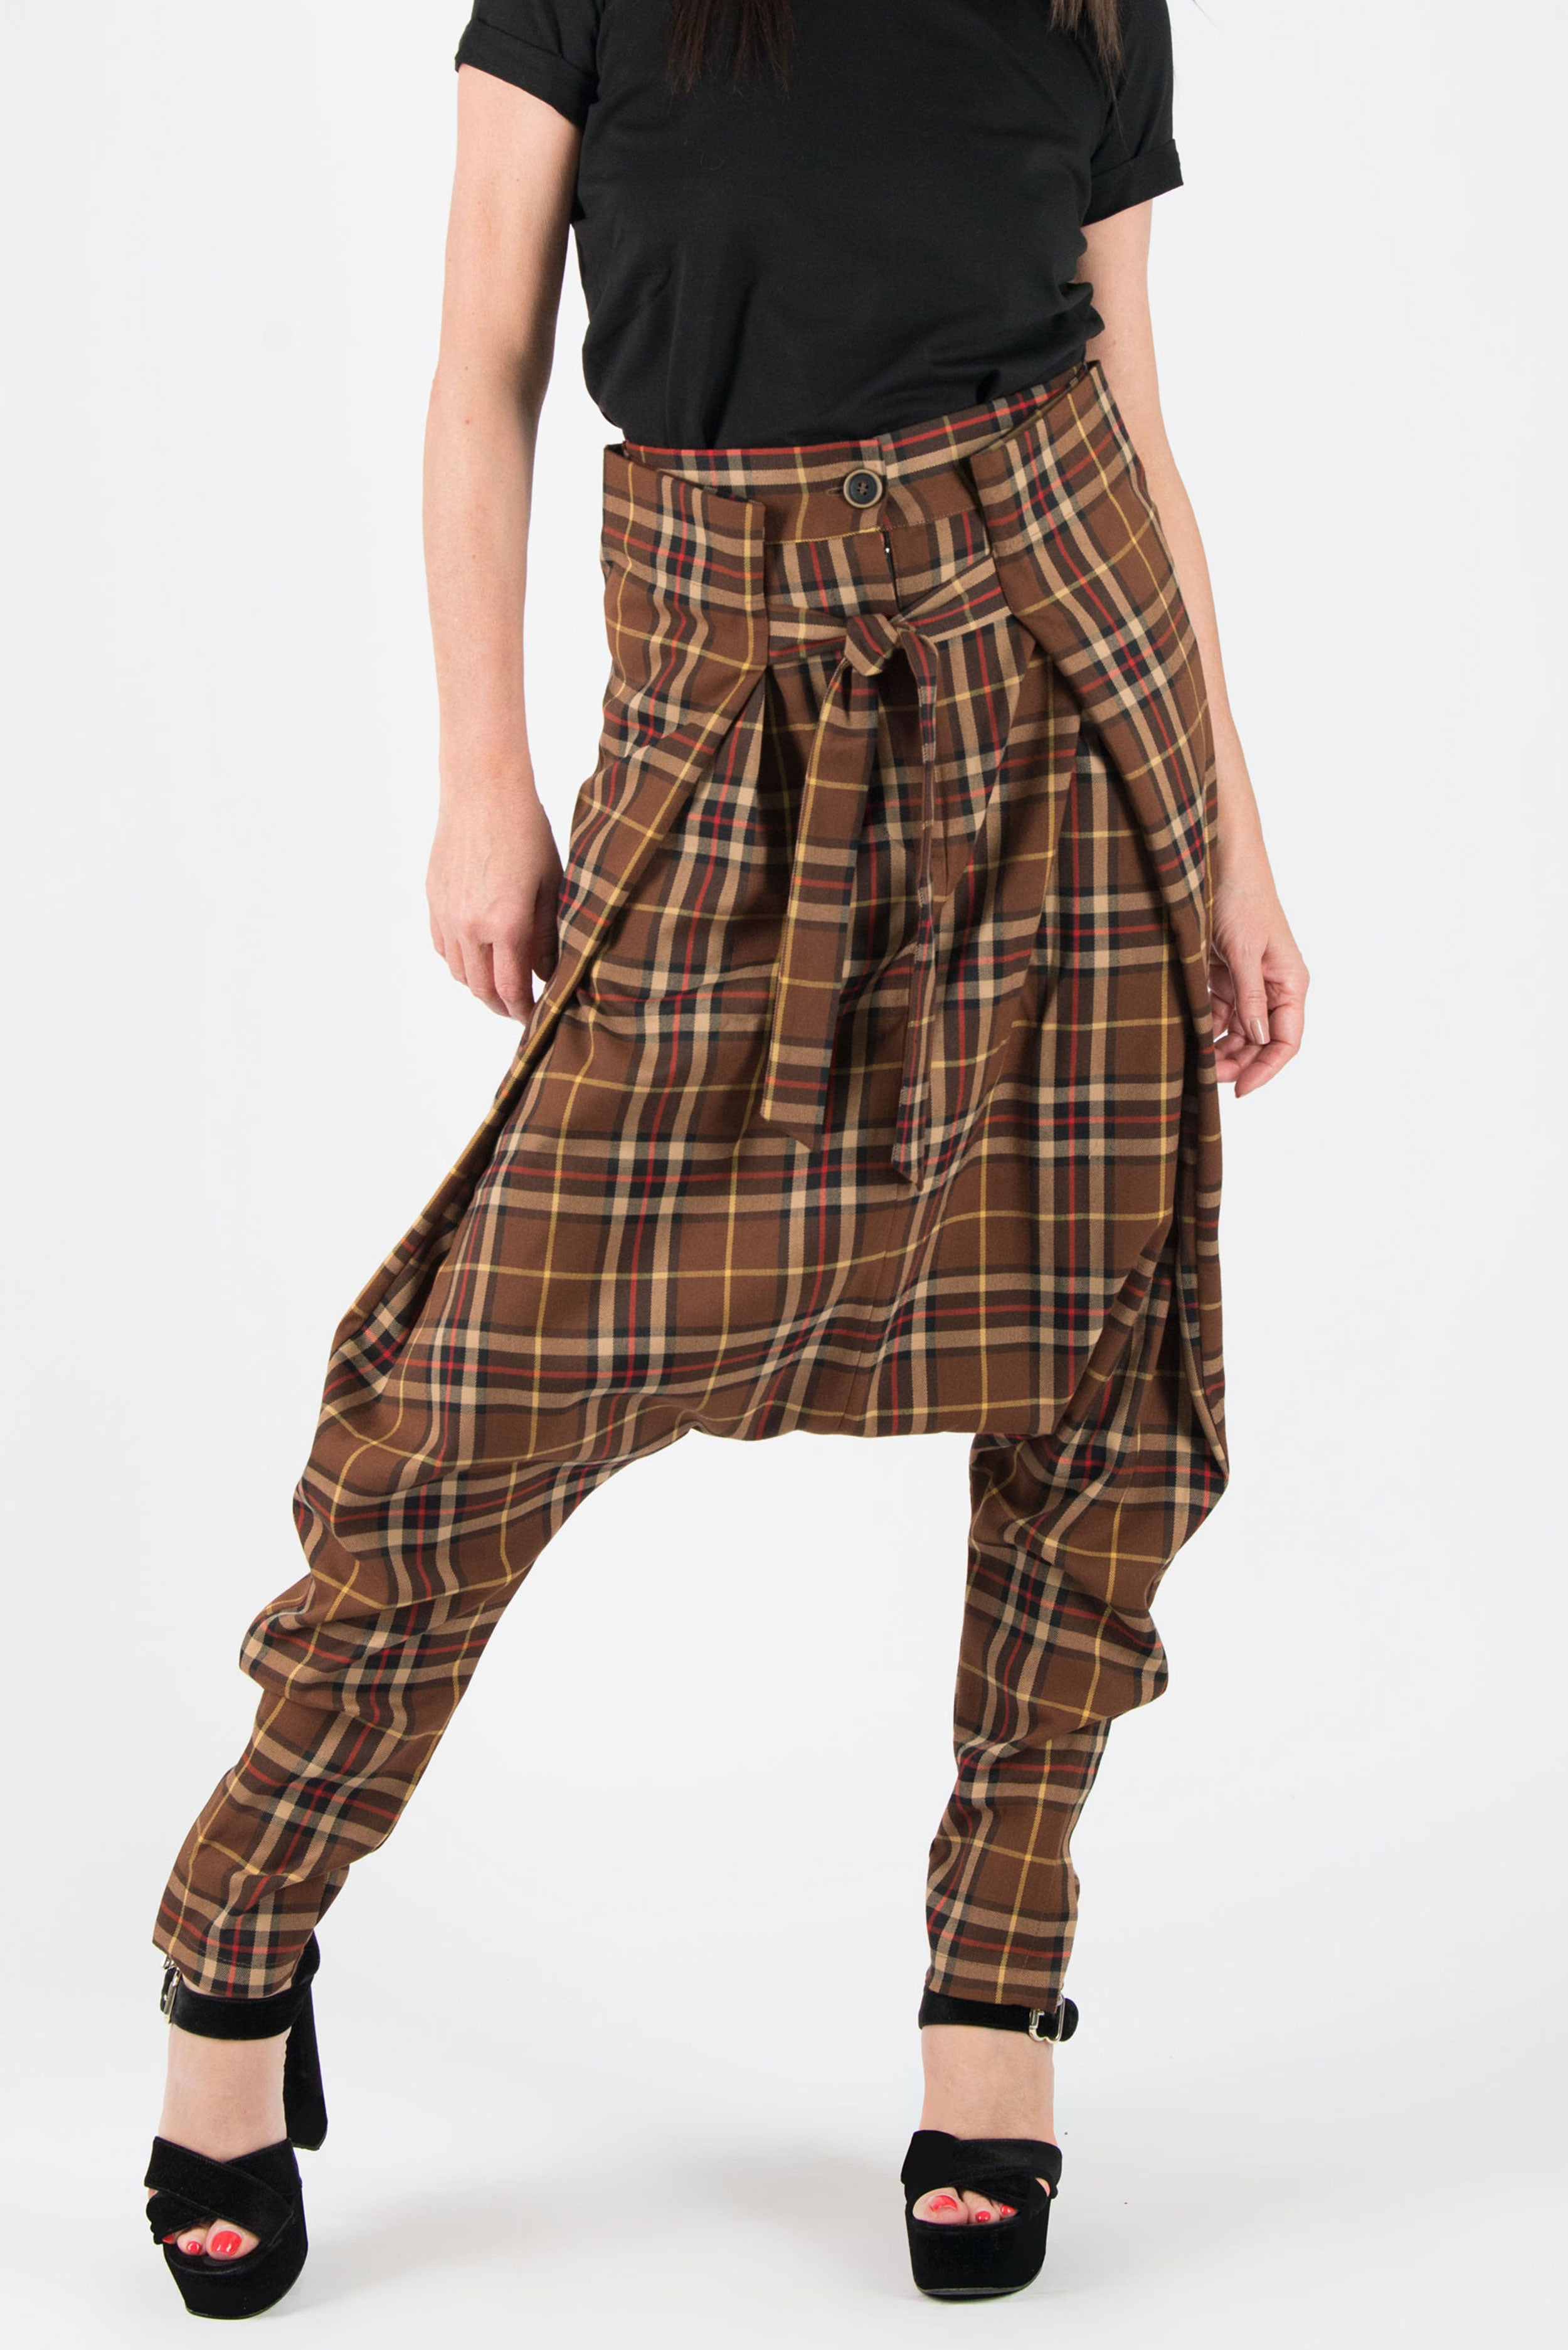 Brown Red Check Drop Crotch Pants - EUG FASHION